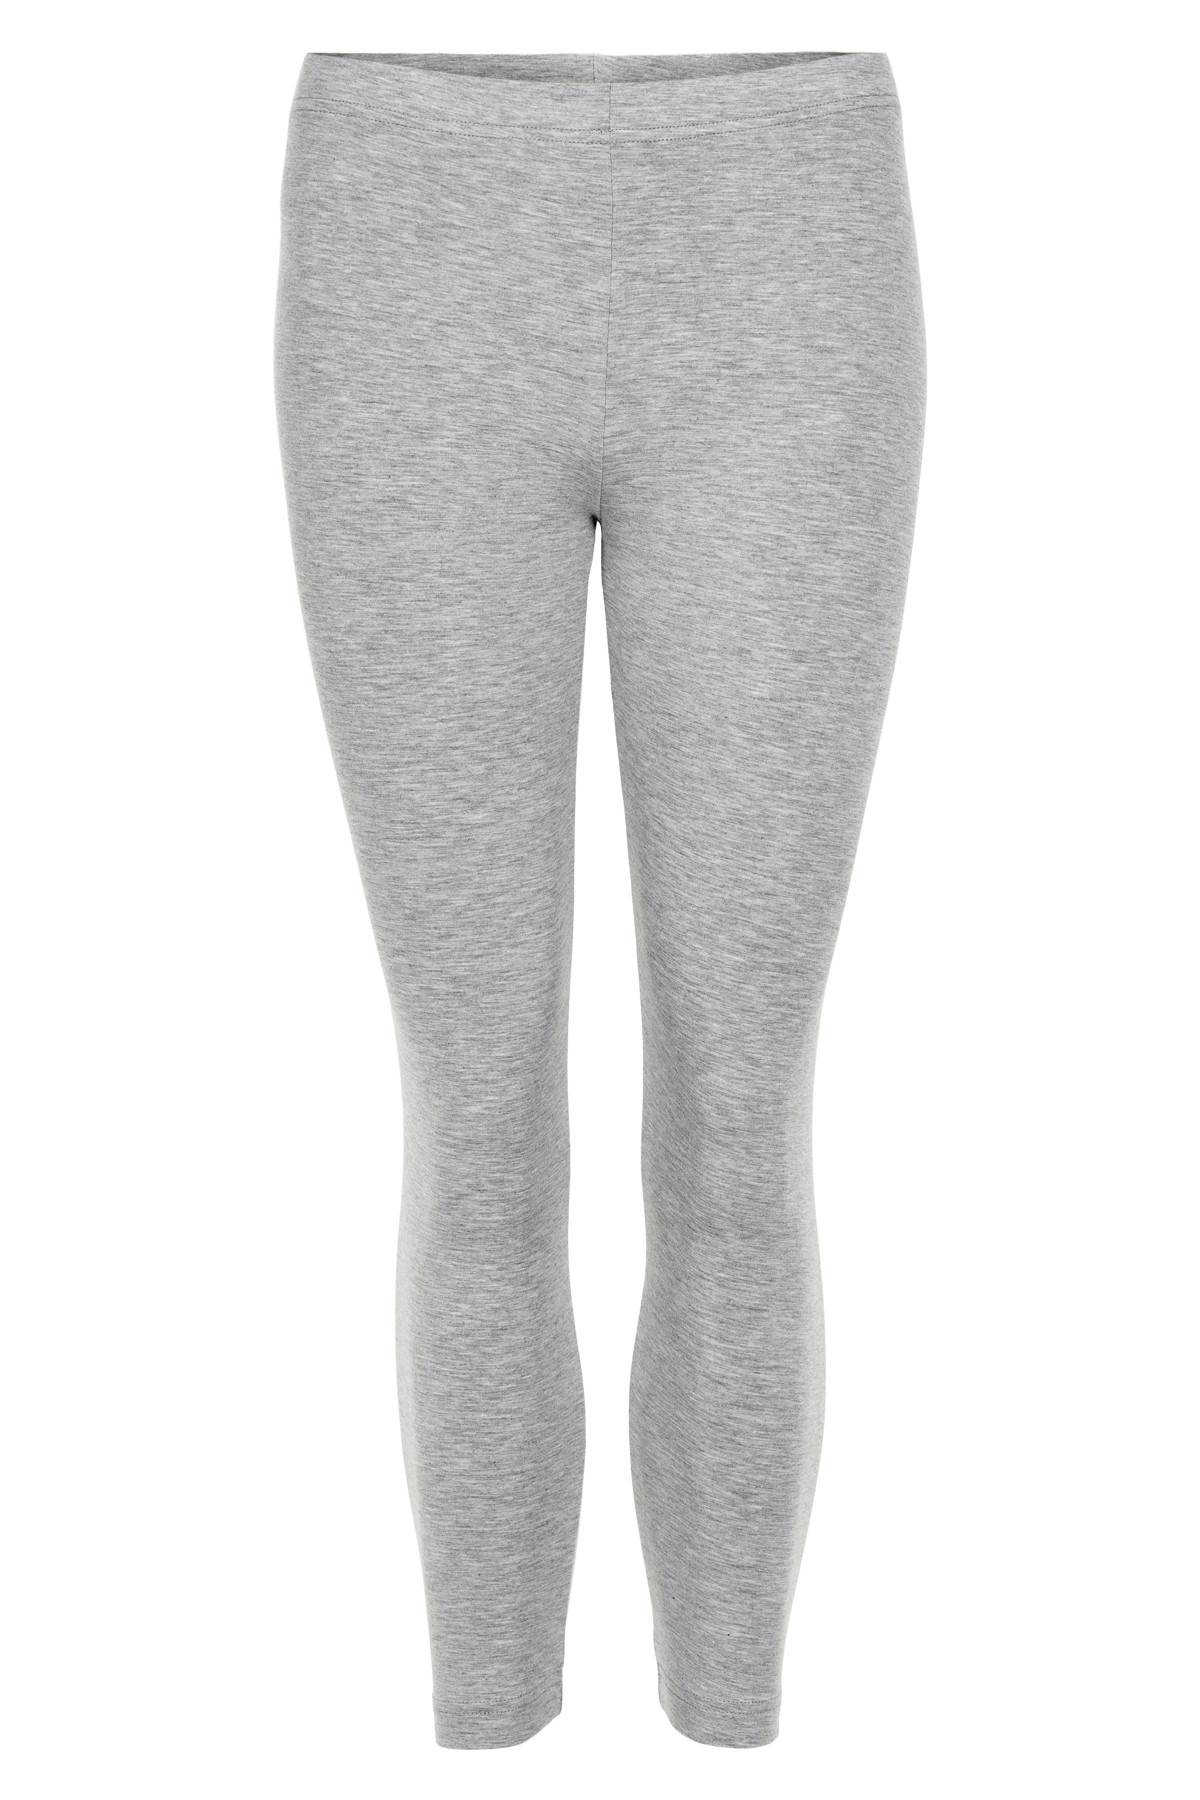 NOA NOA LEGGINGS 1-9383-1 00005 (Grey, XS)